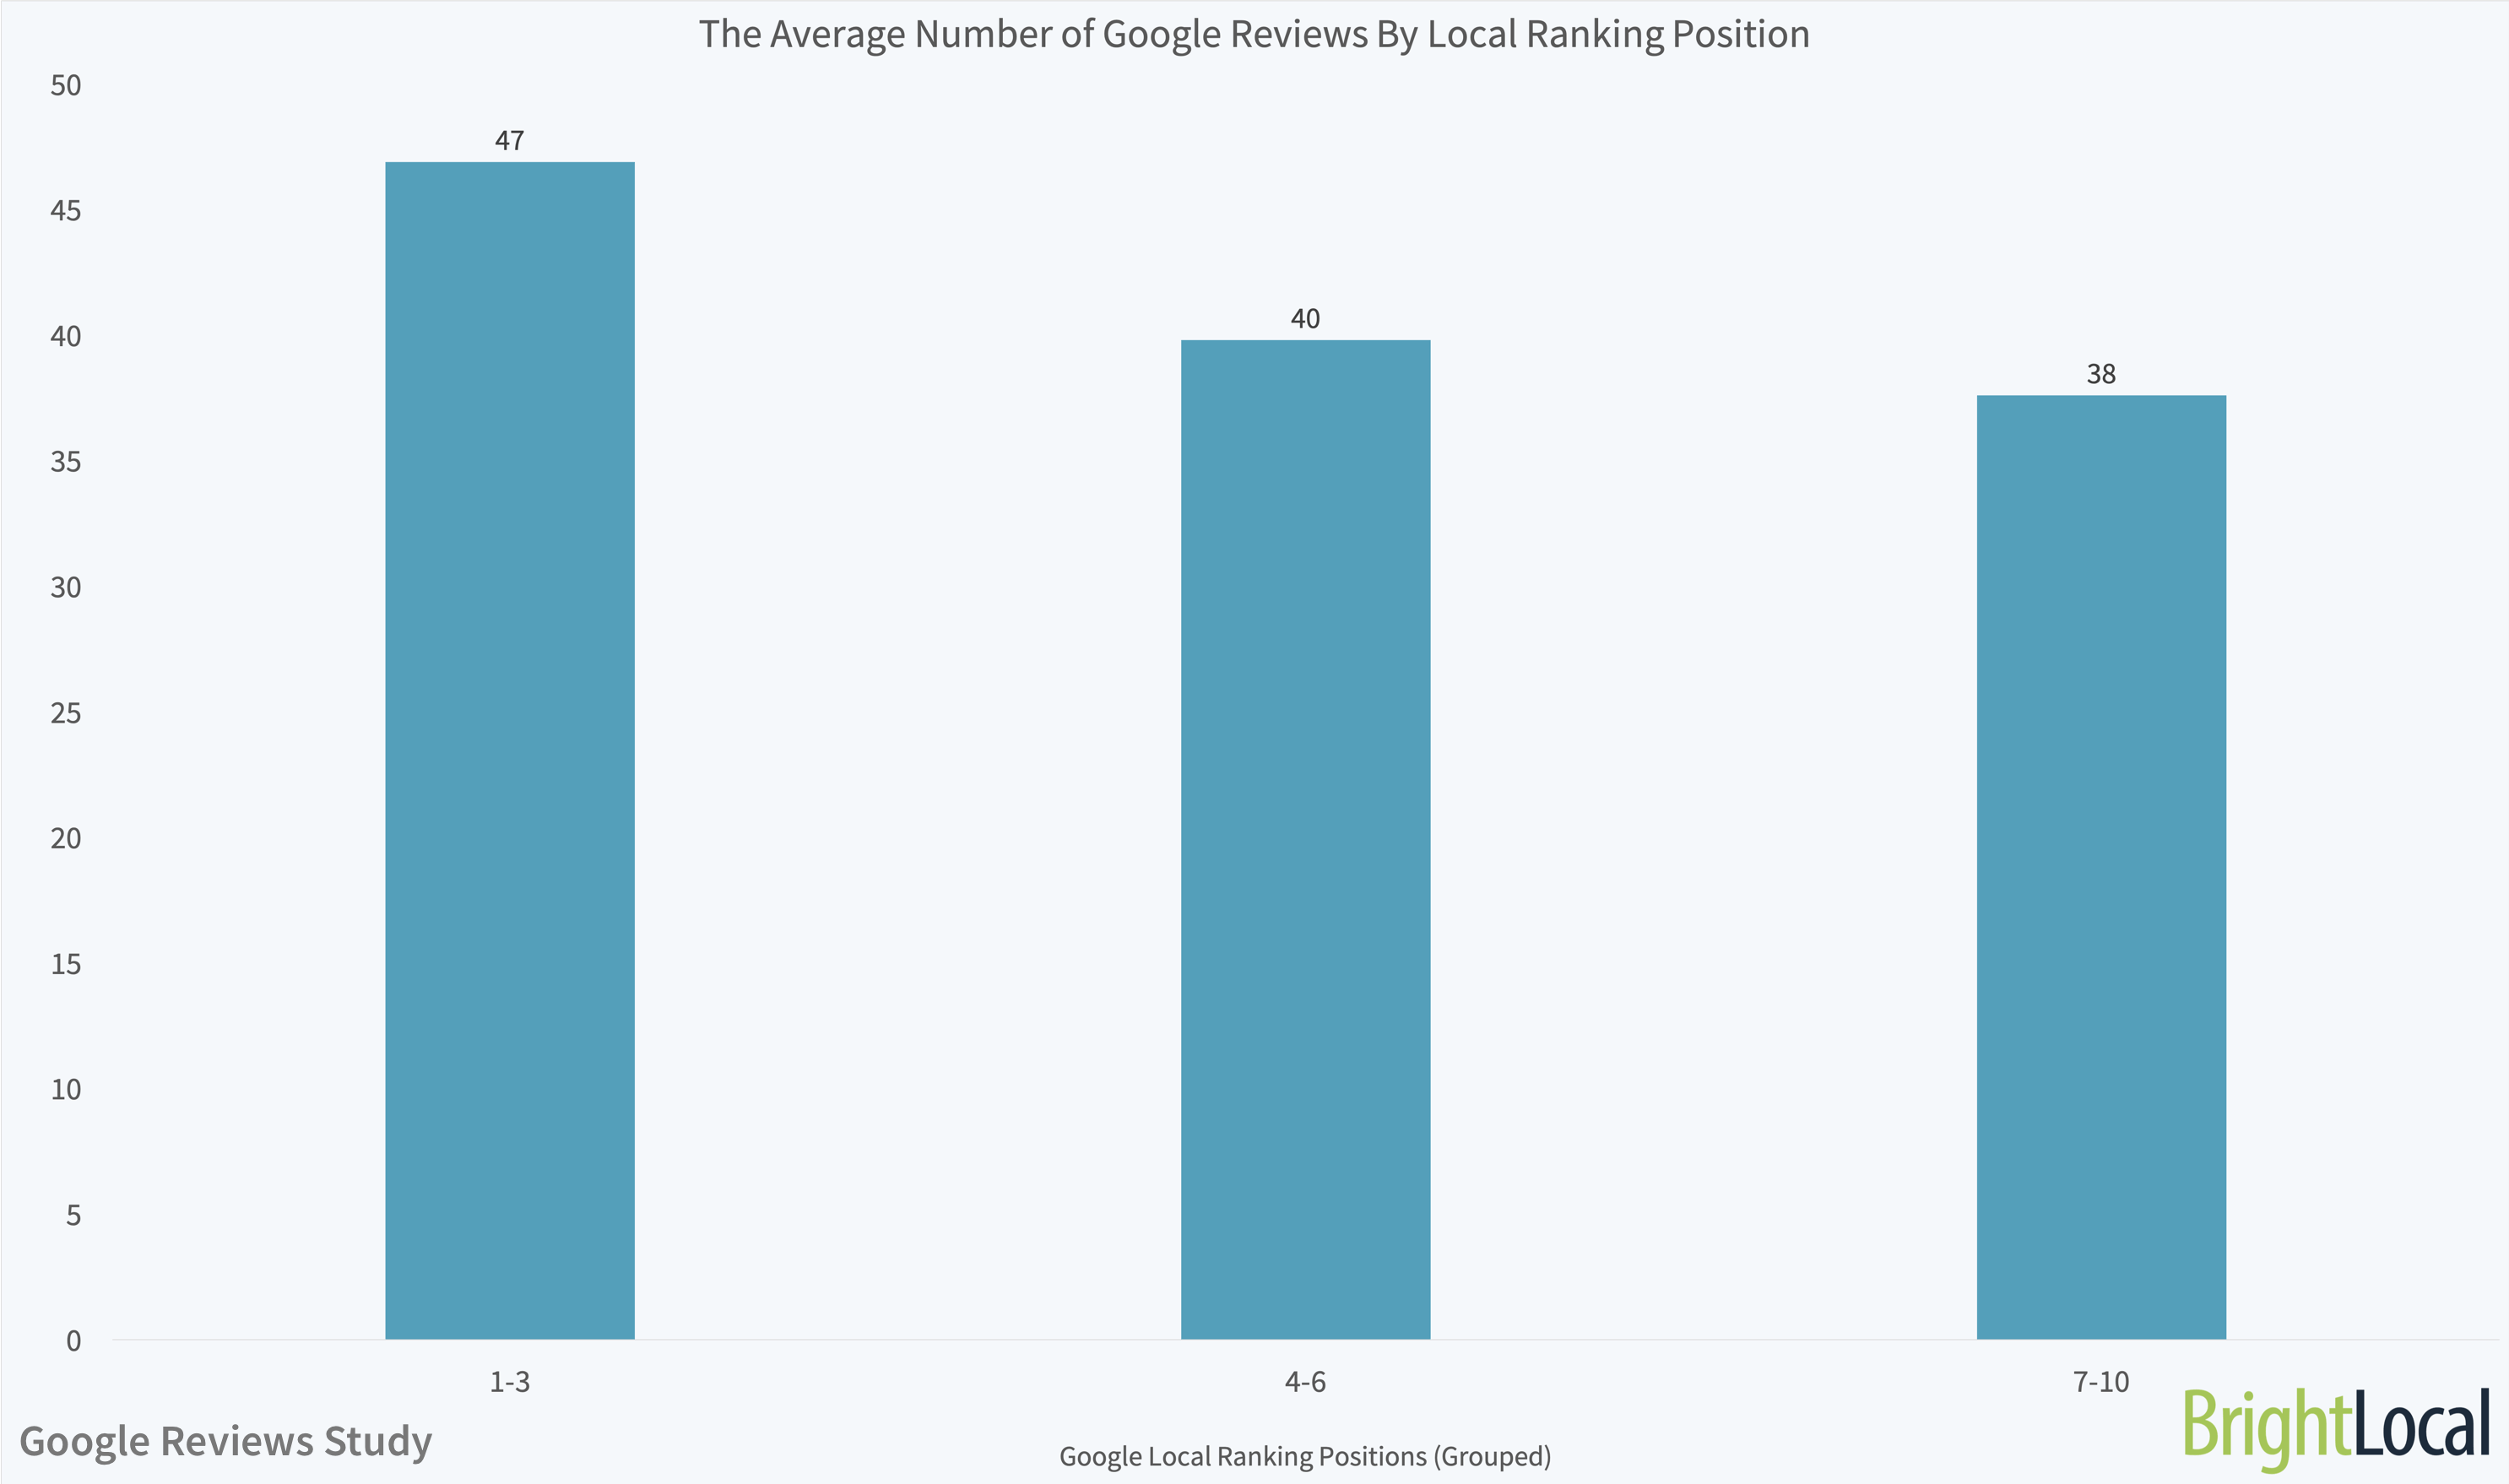 The Average Number of Google Reviews By Local Ranking Groups